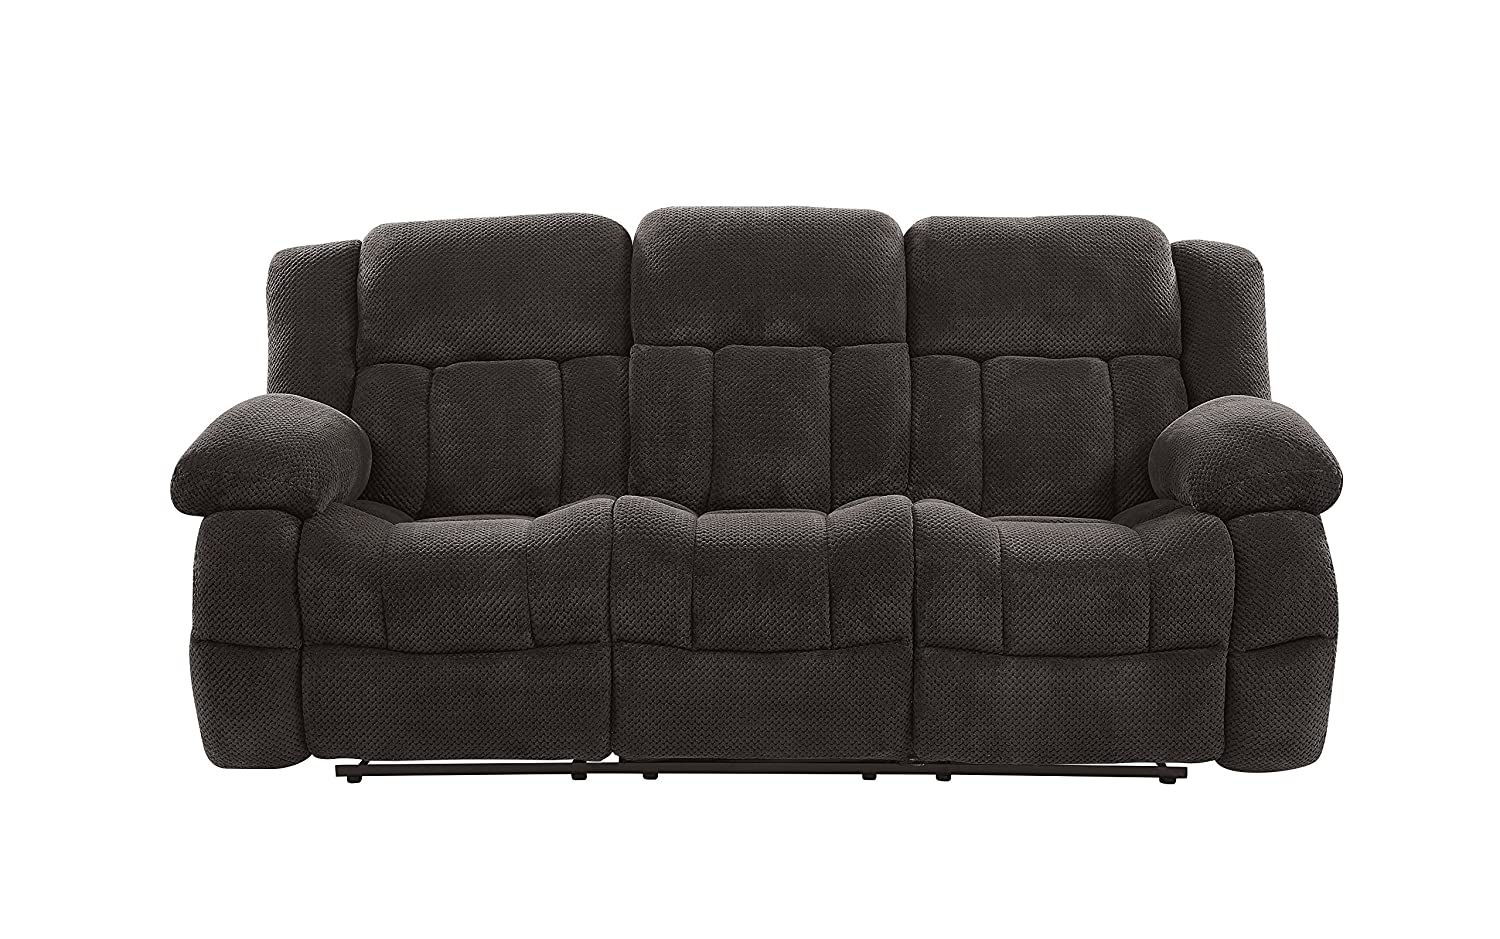 Amazon.com: Global Furniture USA U1600-M1706-RS W/DDT Sofa ...